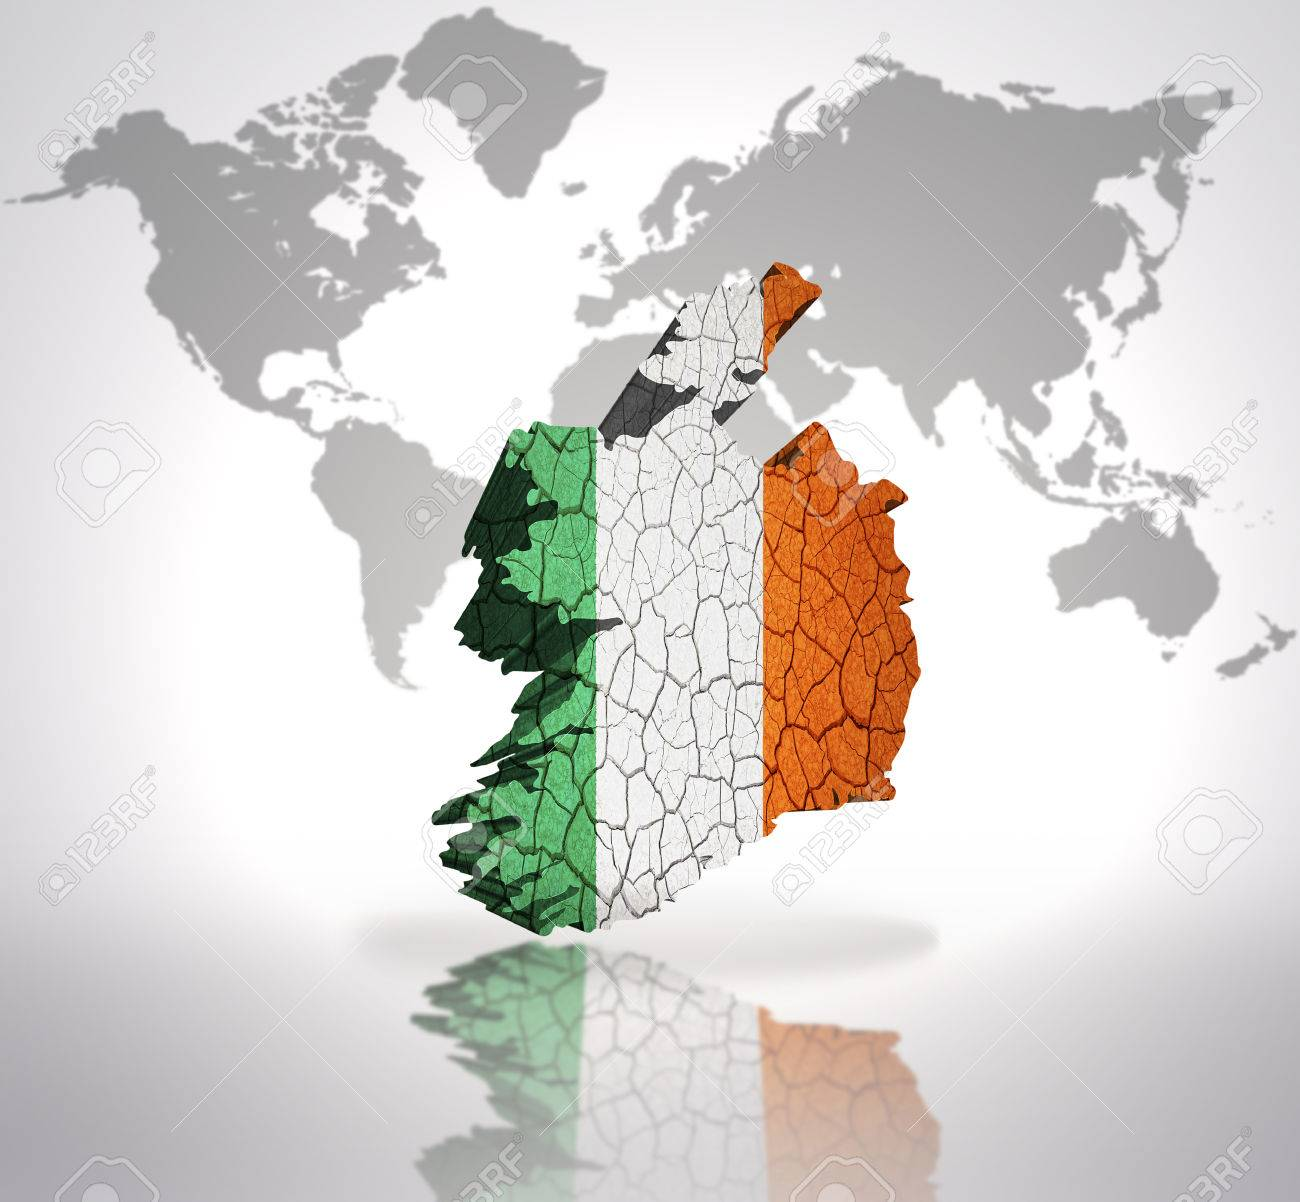 Map of ireland with irish flag on a world map background stock photo map of ireland with irish flag on a world map background stock photo 32715078 gumiabroncs Gallery